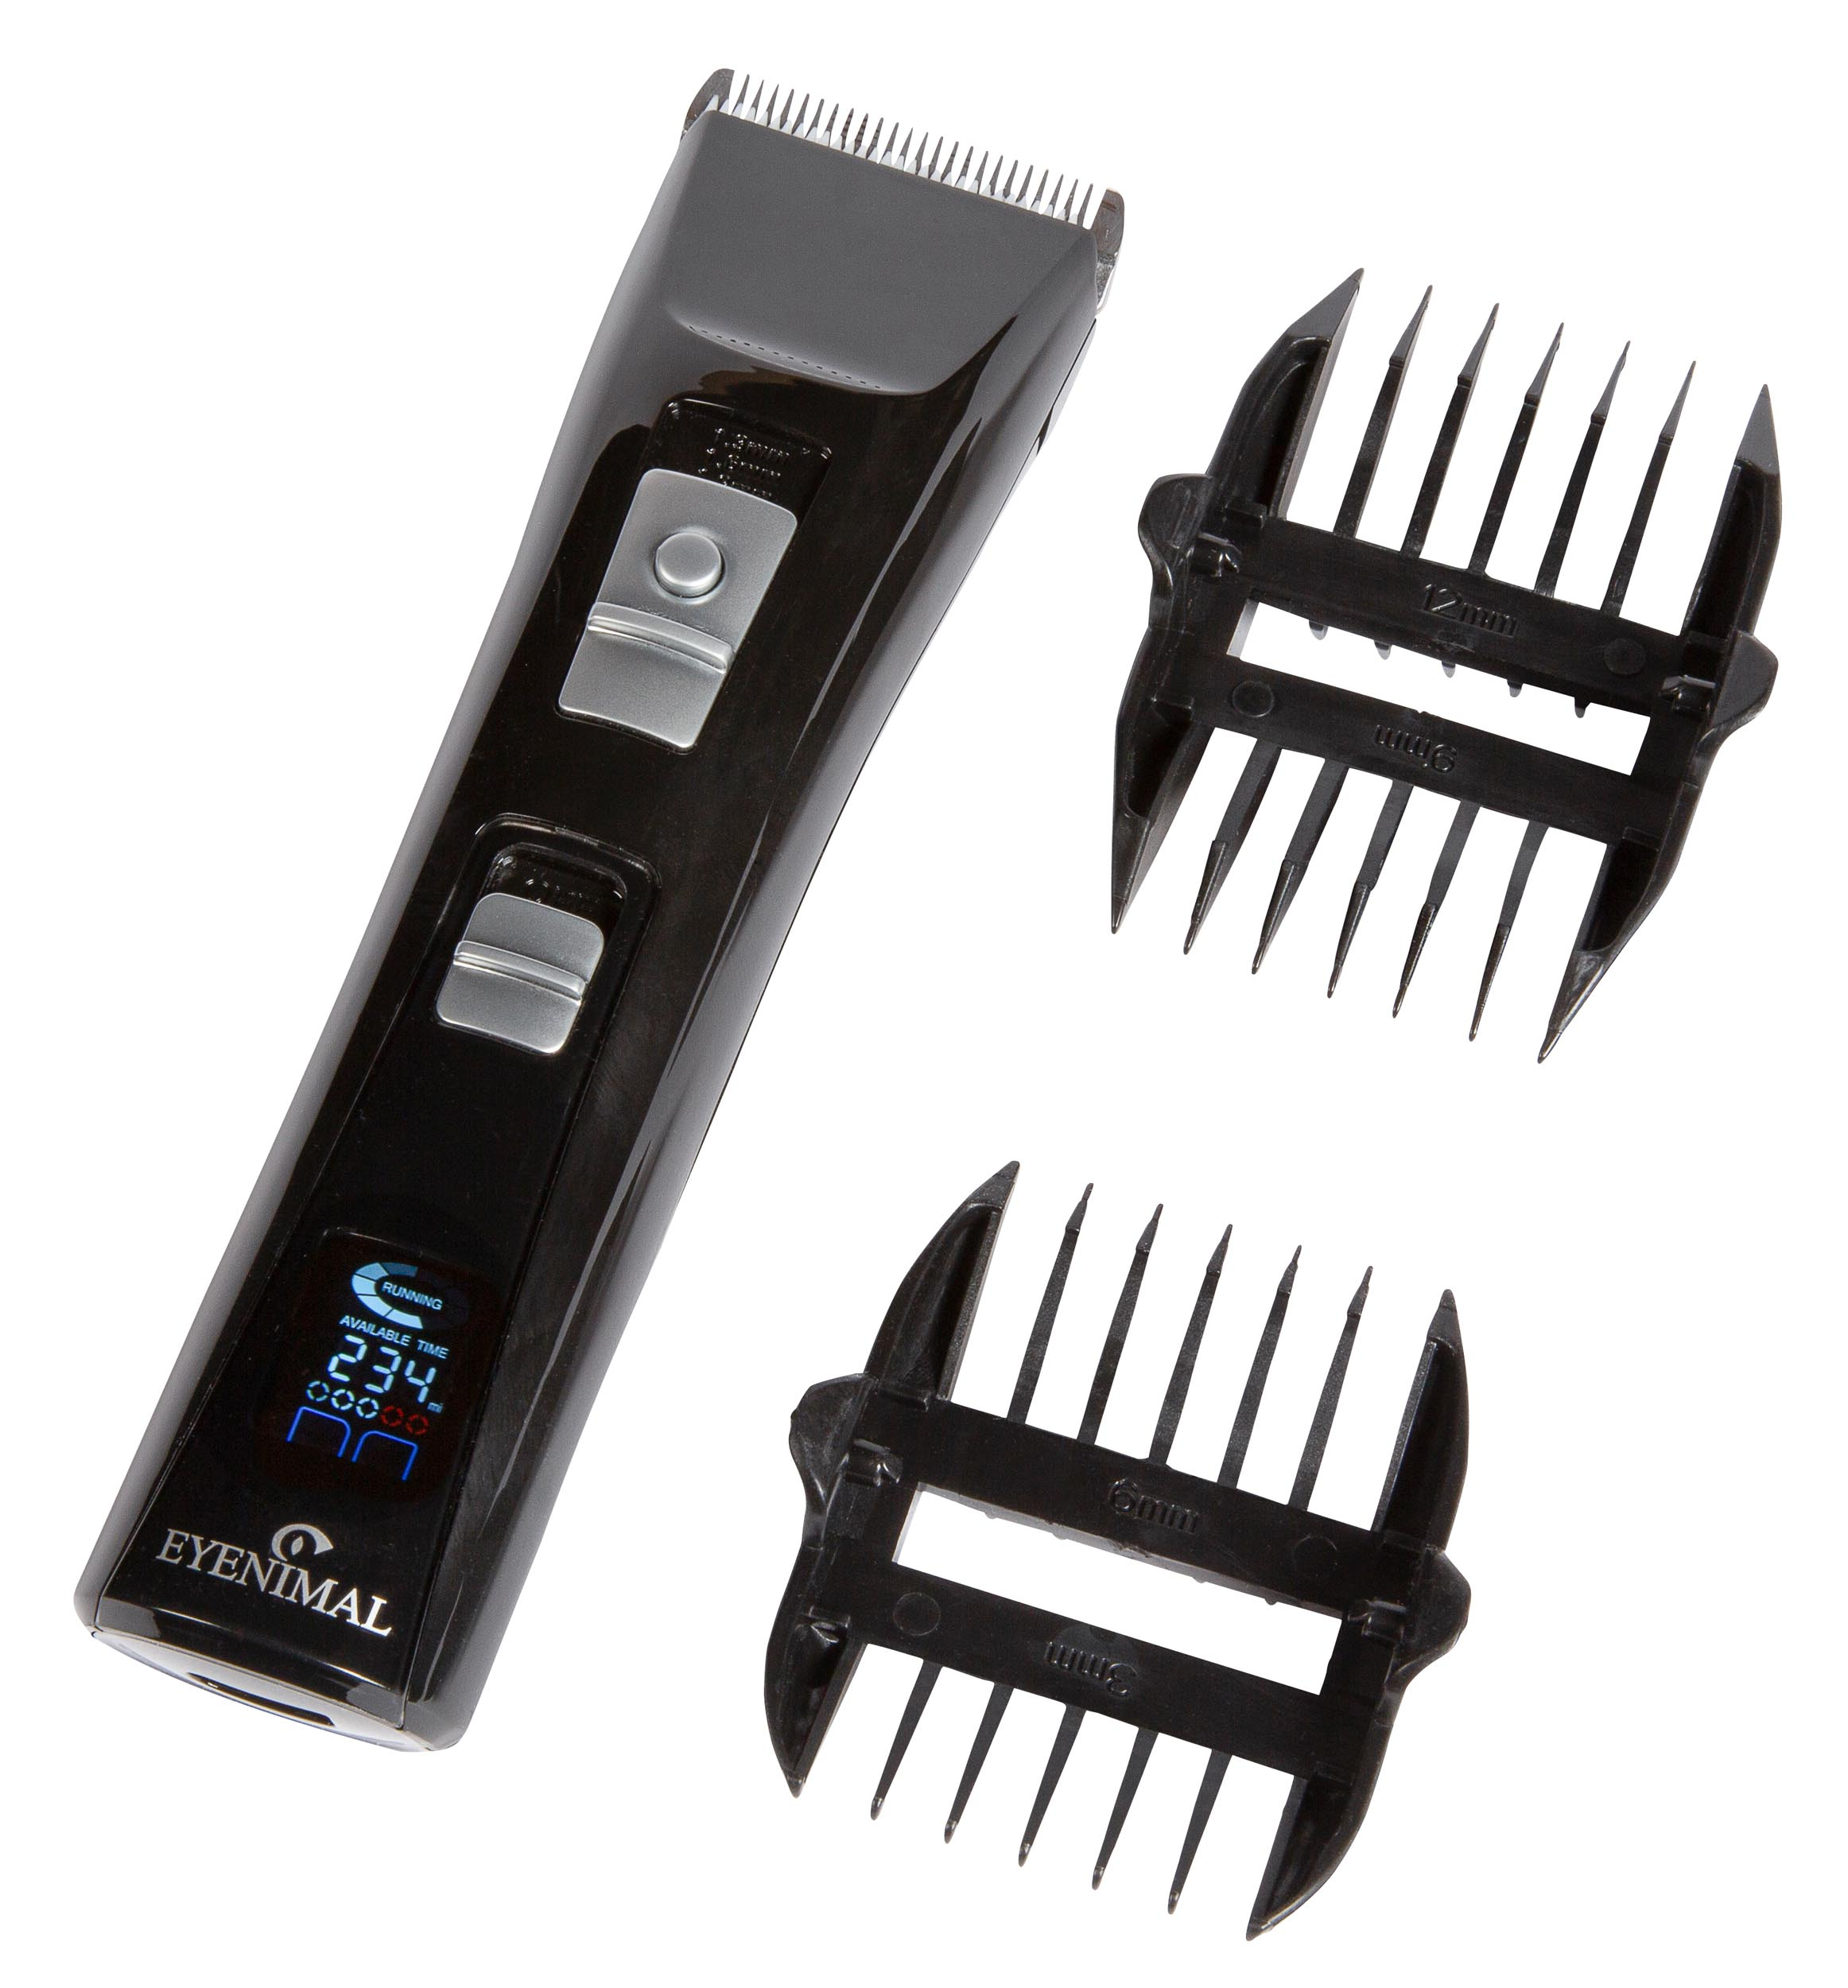 NUM141-01 EYENIMAL Digital Pet Clipper - NUM141